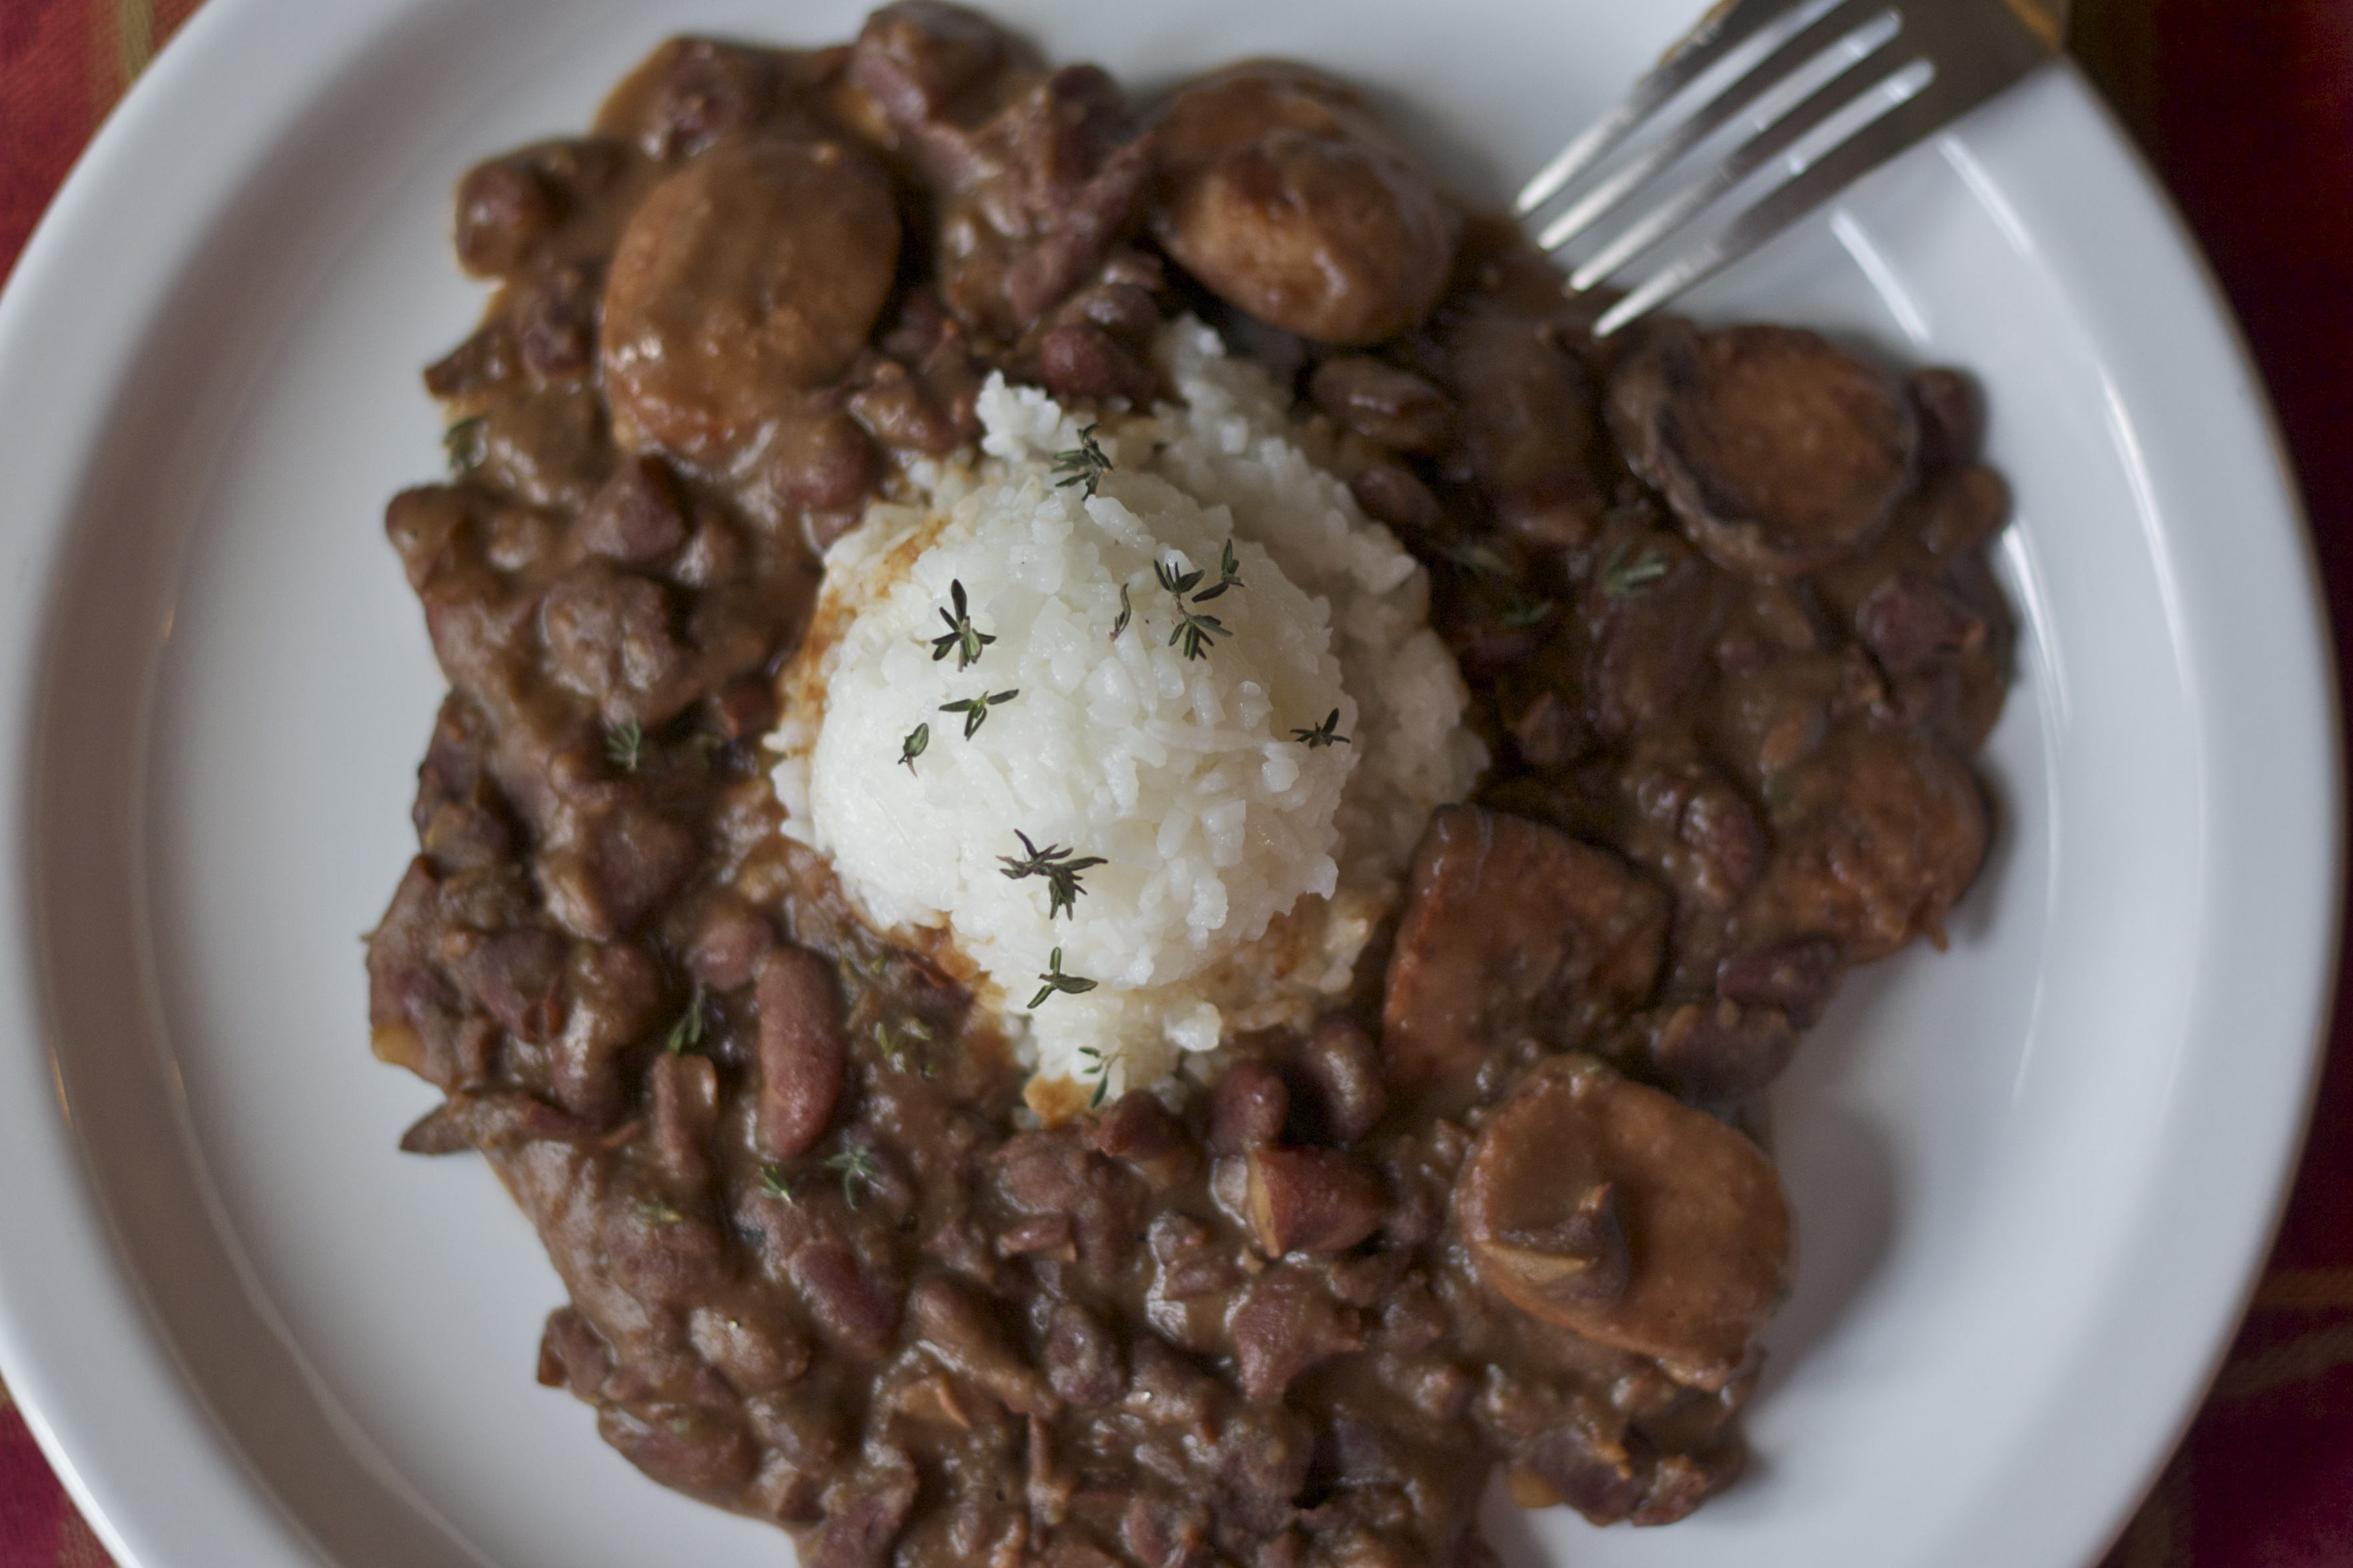 Traditional New Orleans red beans and rice on white plate.